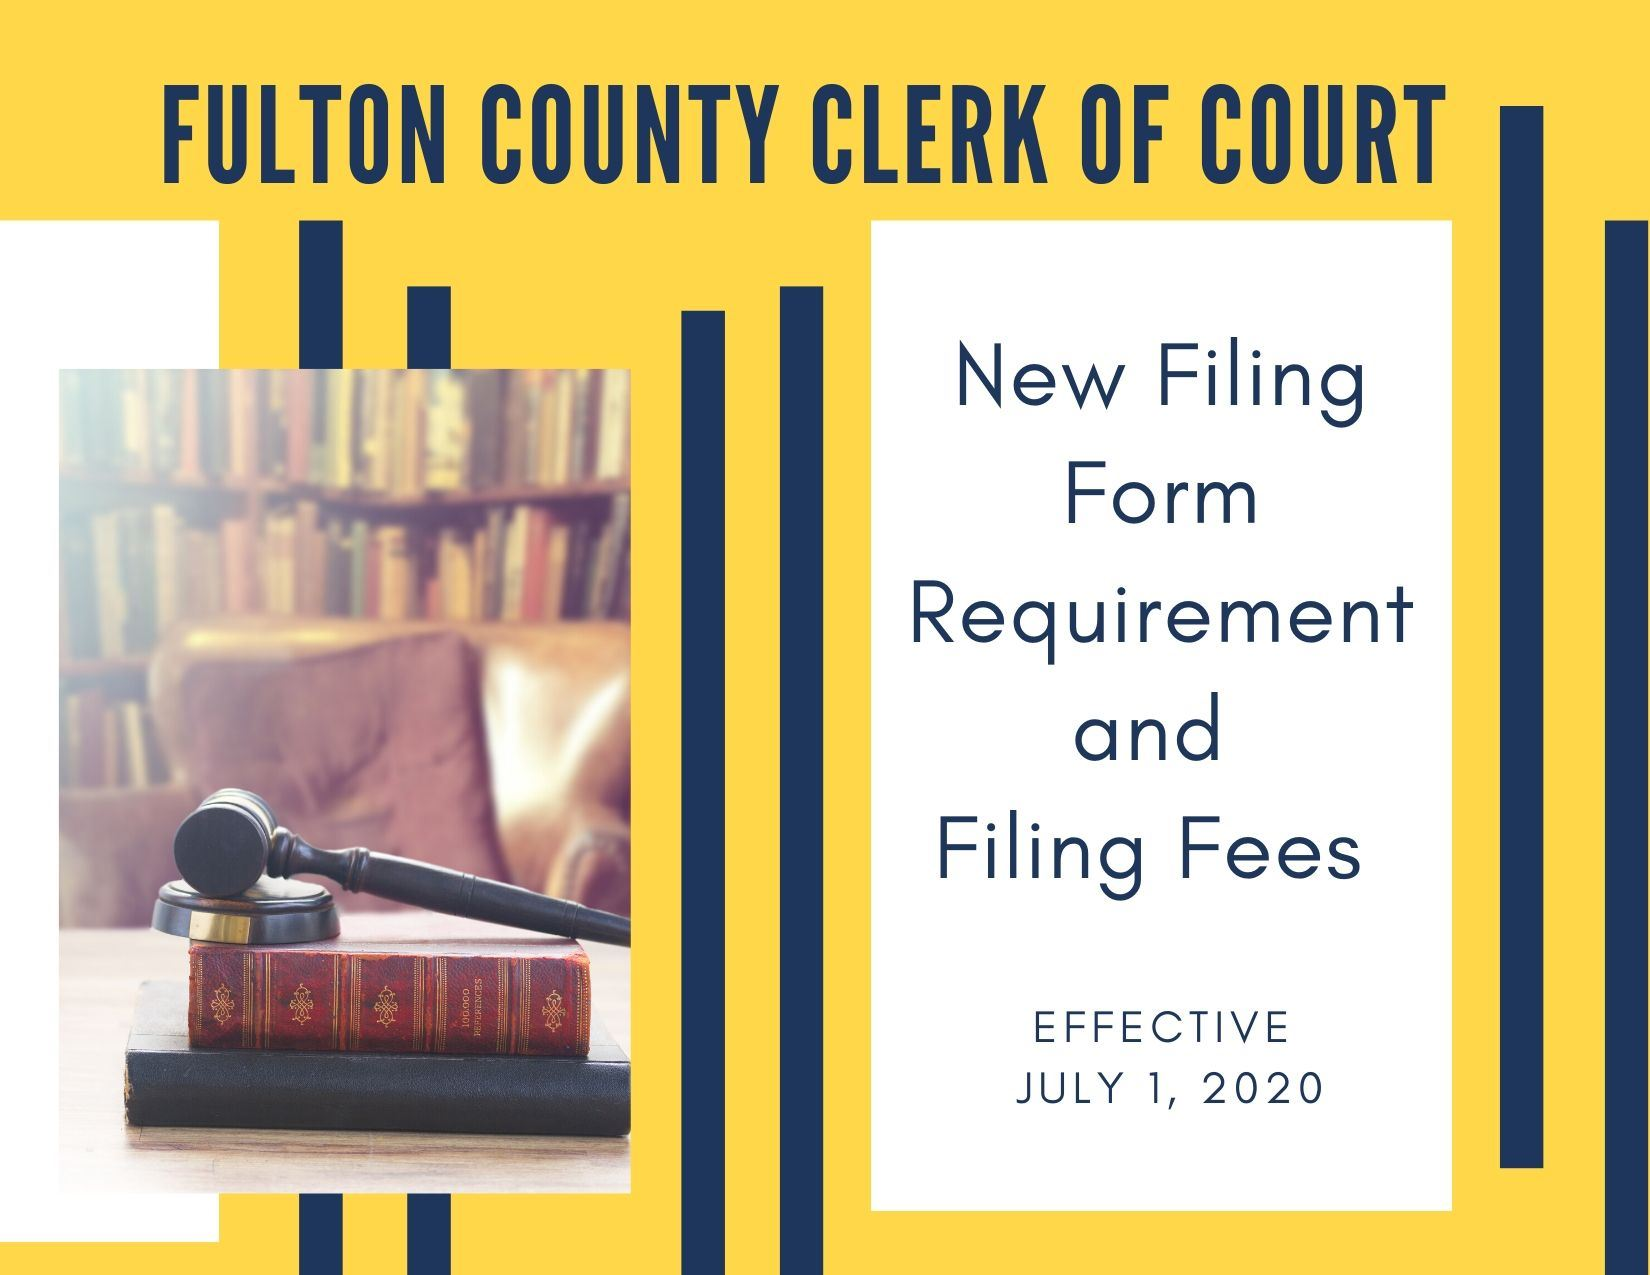 Fulton County Clerk of Court new form and filing fees